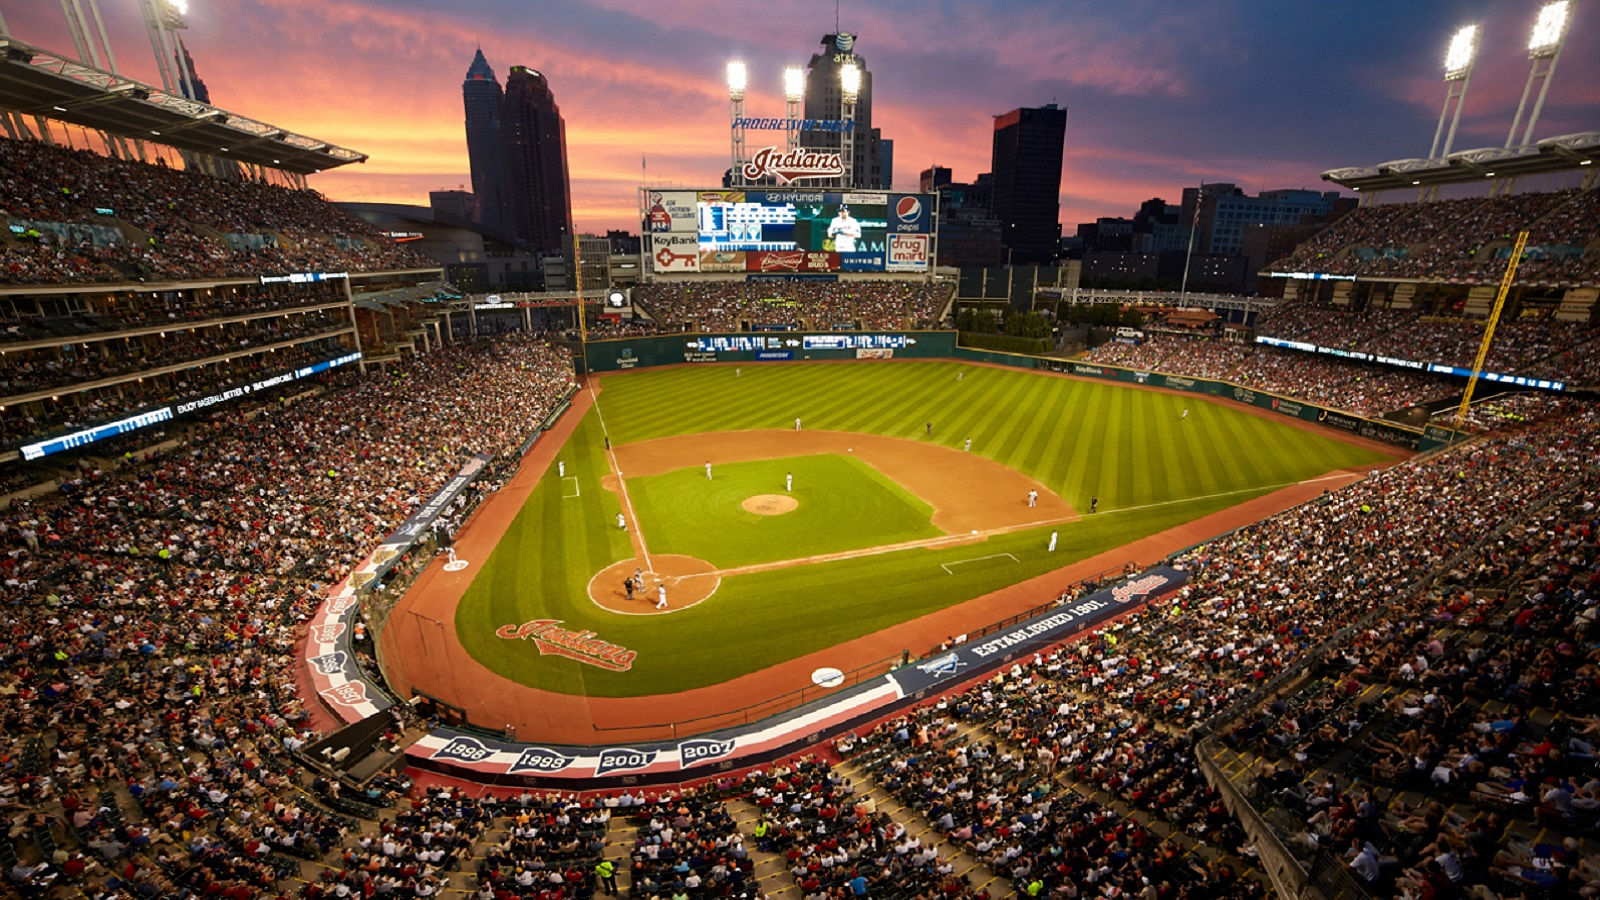 Things to do in Cleveland - Progressive Field